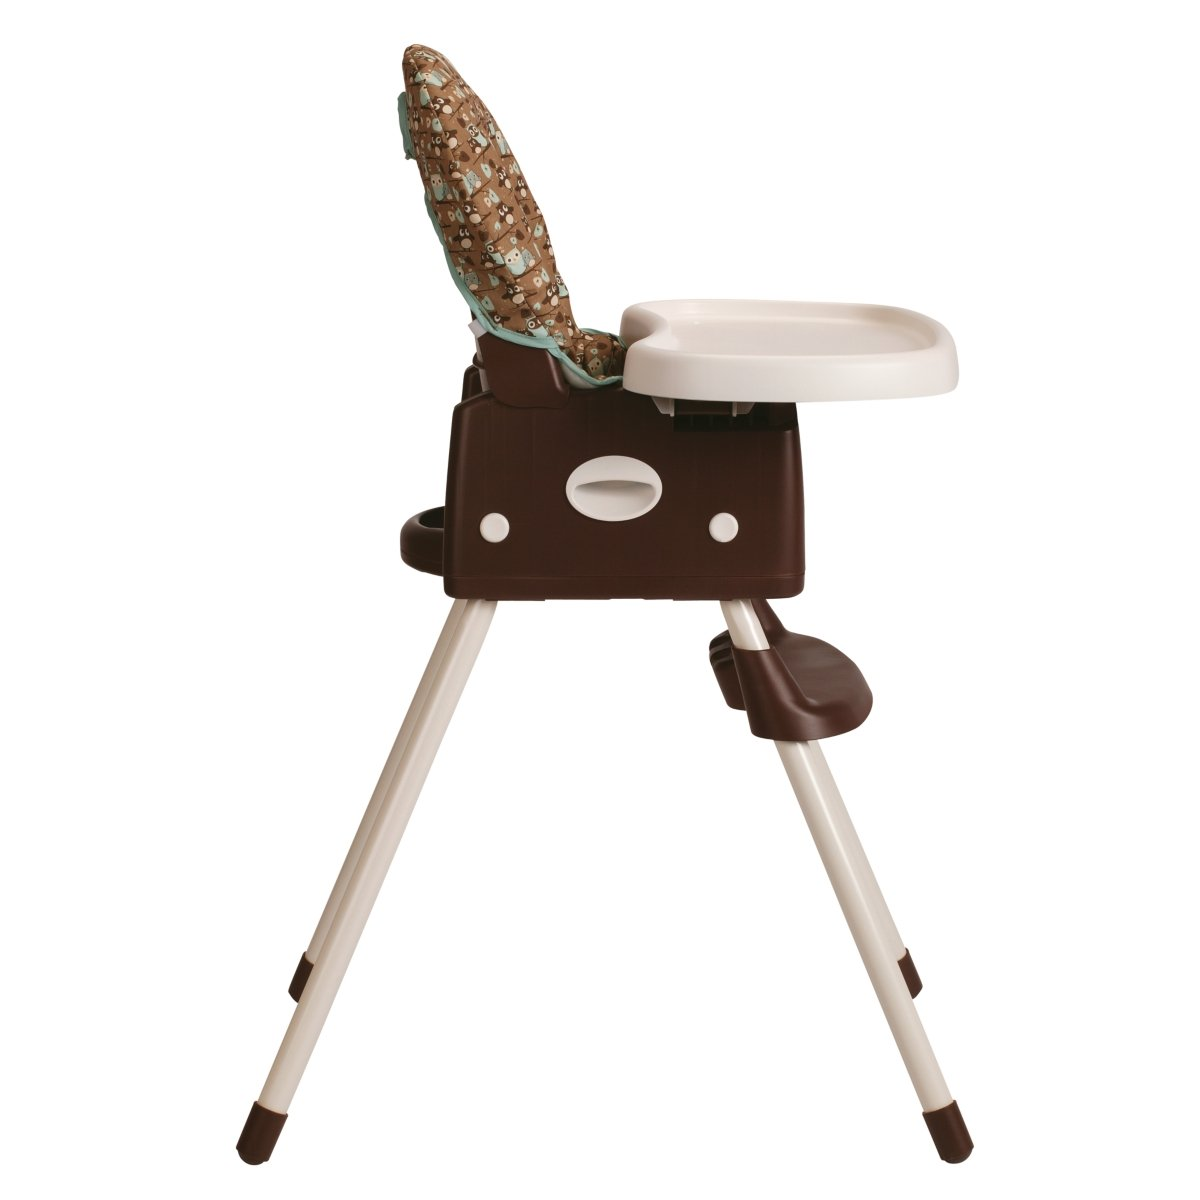 graco convertible high chair louis dining chairs simpleswitch and booster